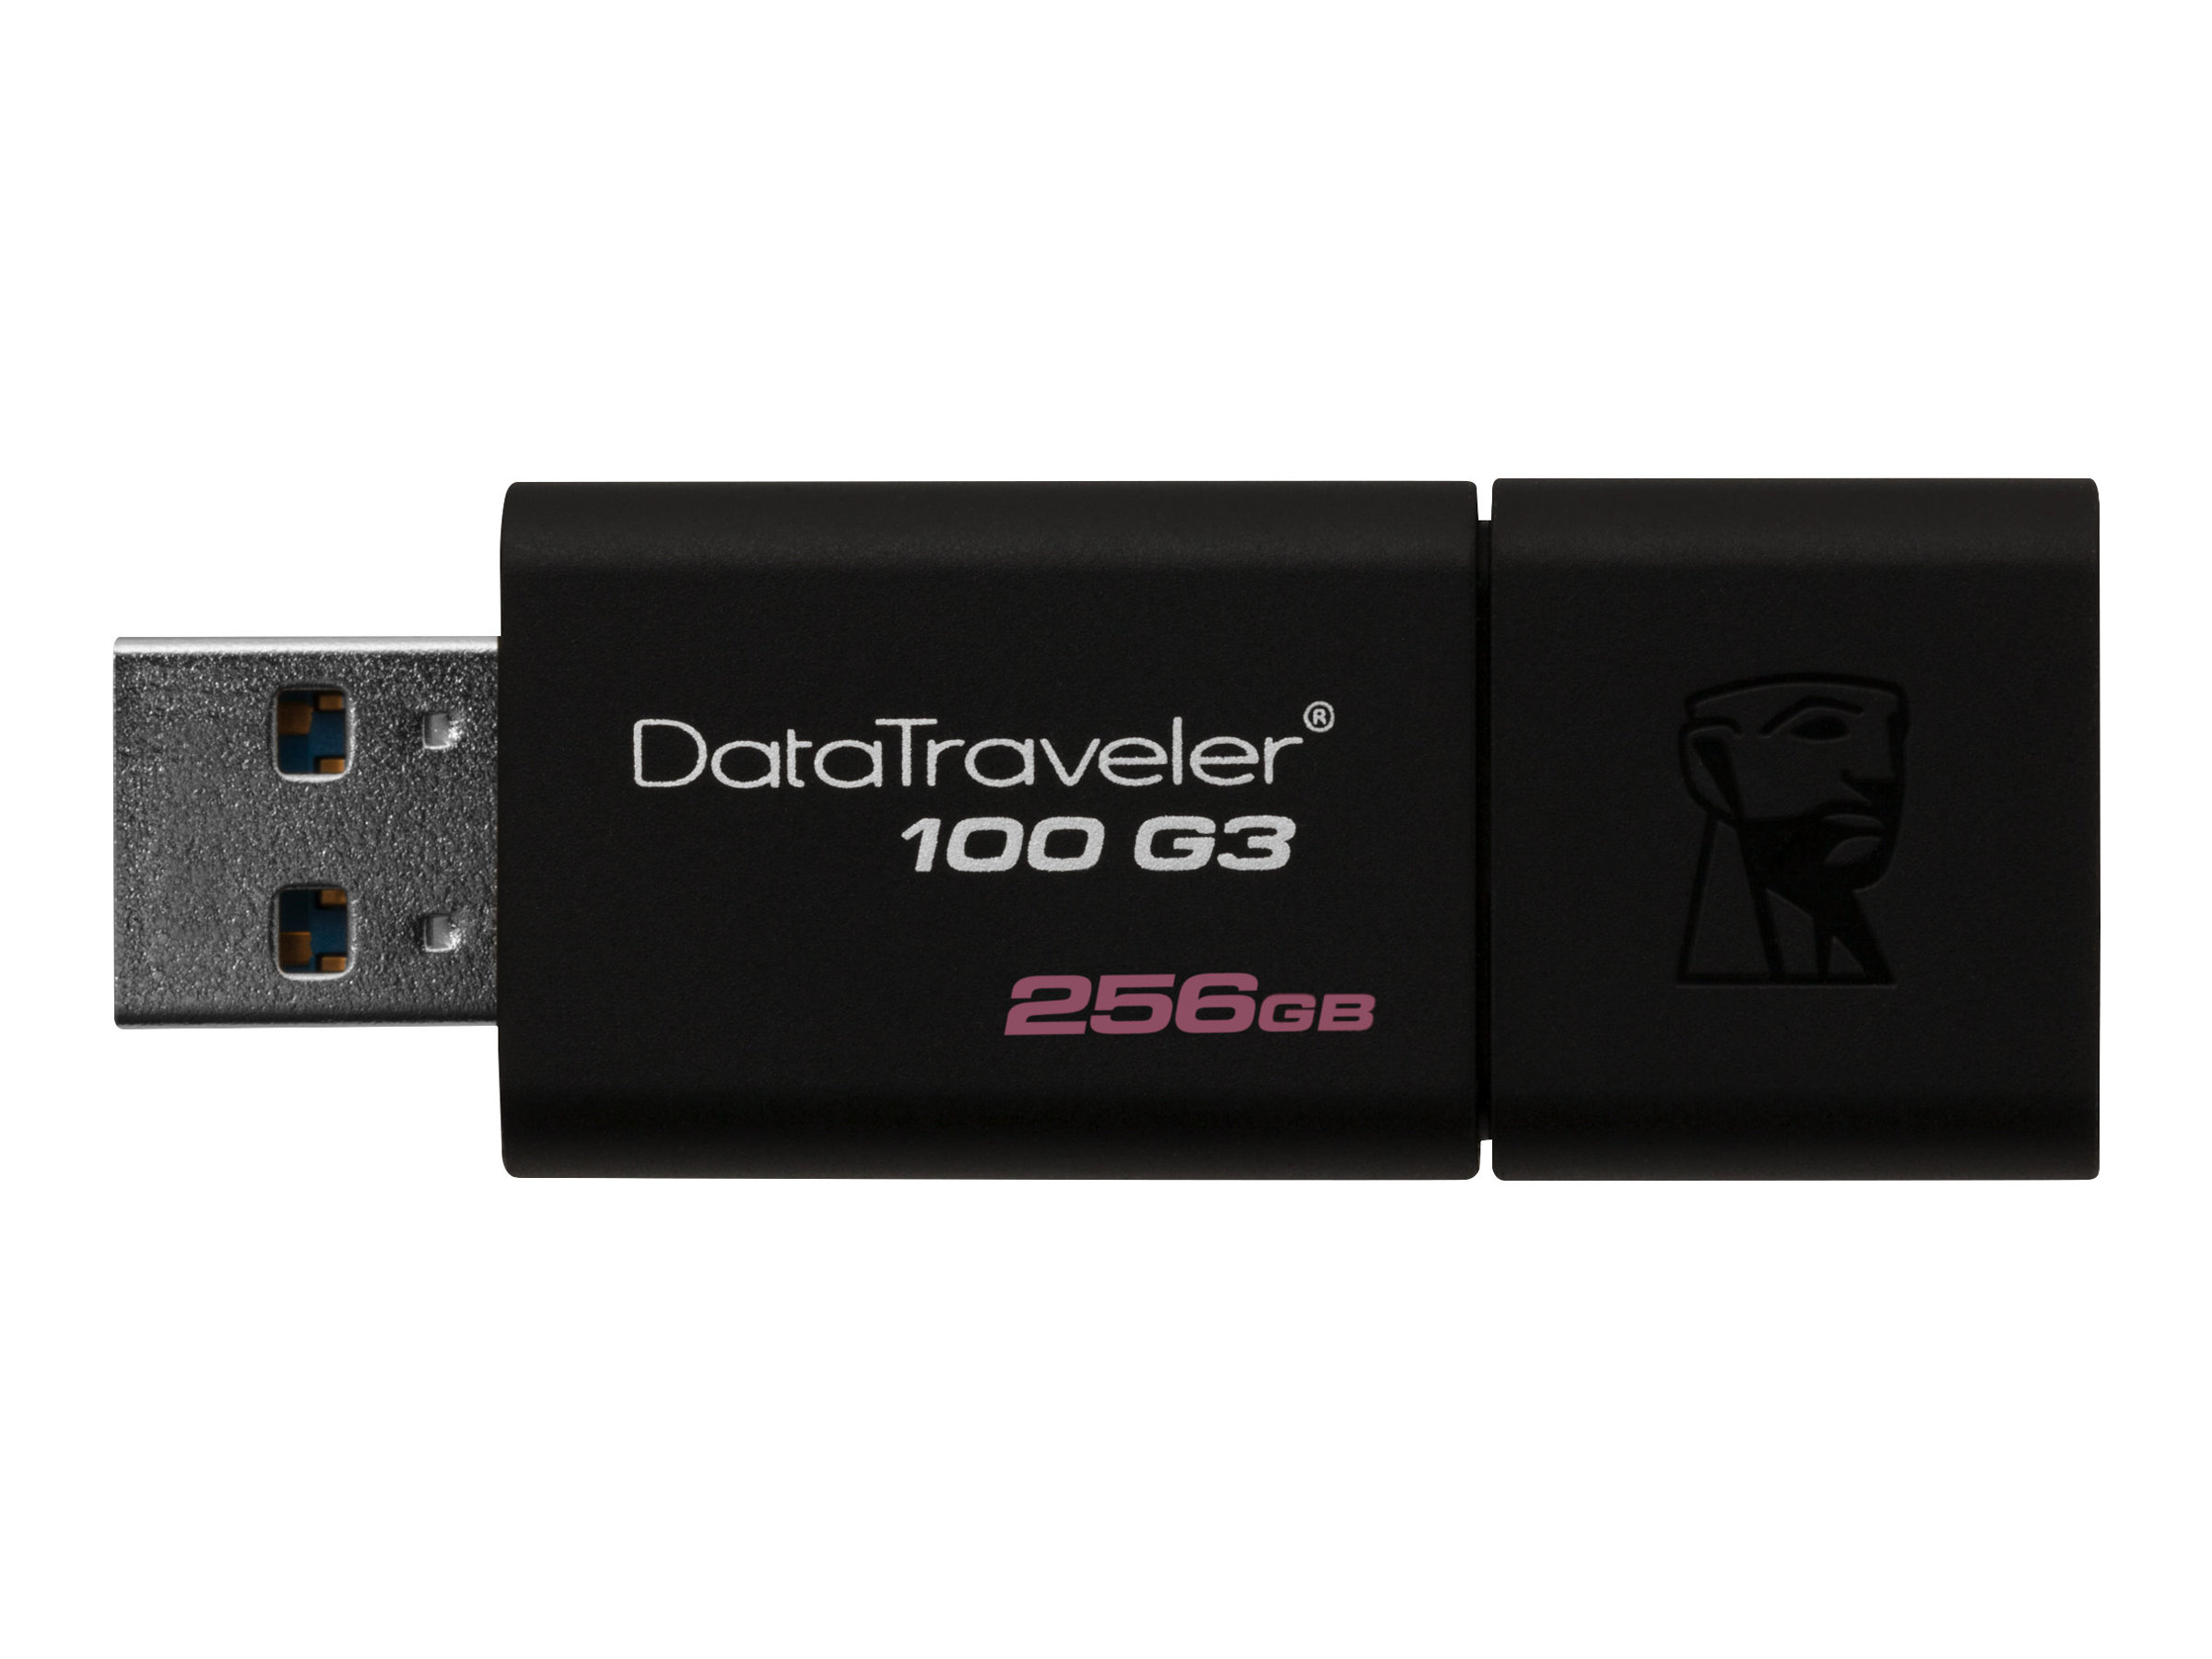 Kingston DataTraveler 100 G3 - USB flash drive - 256 GB